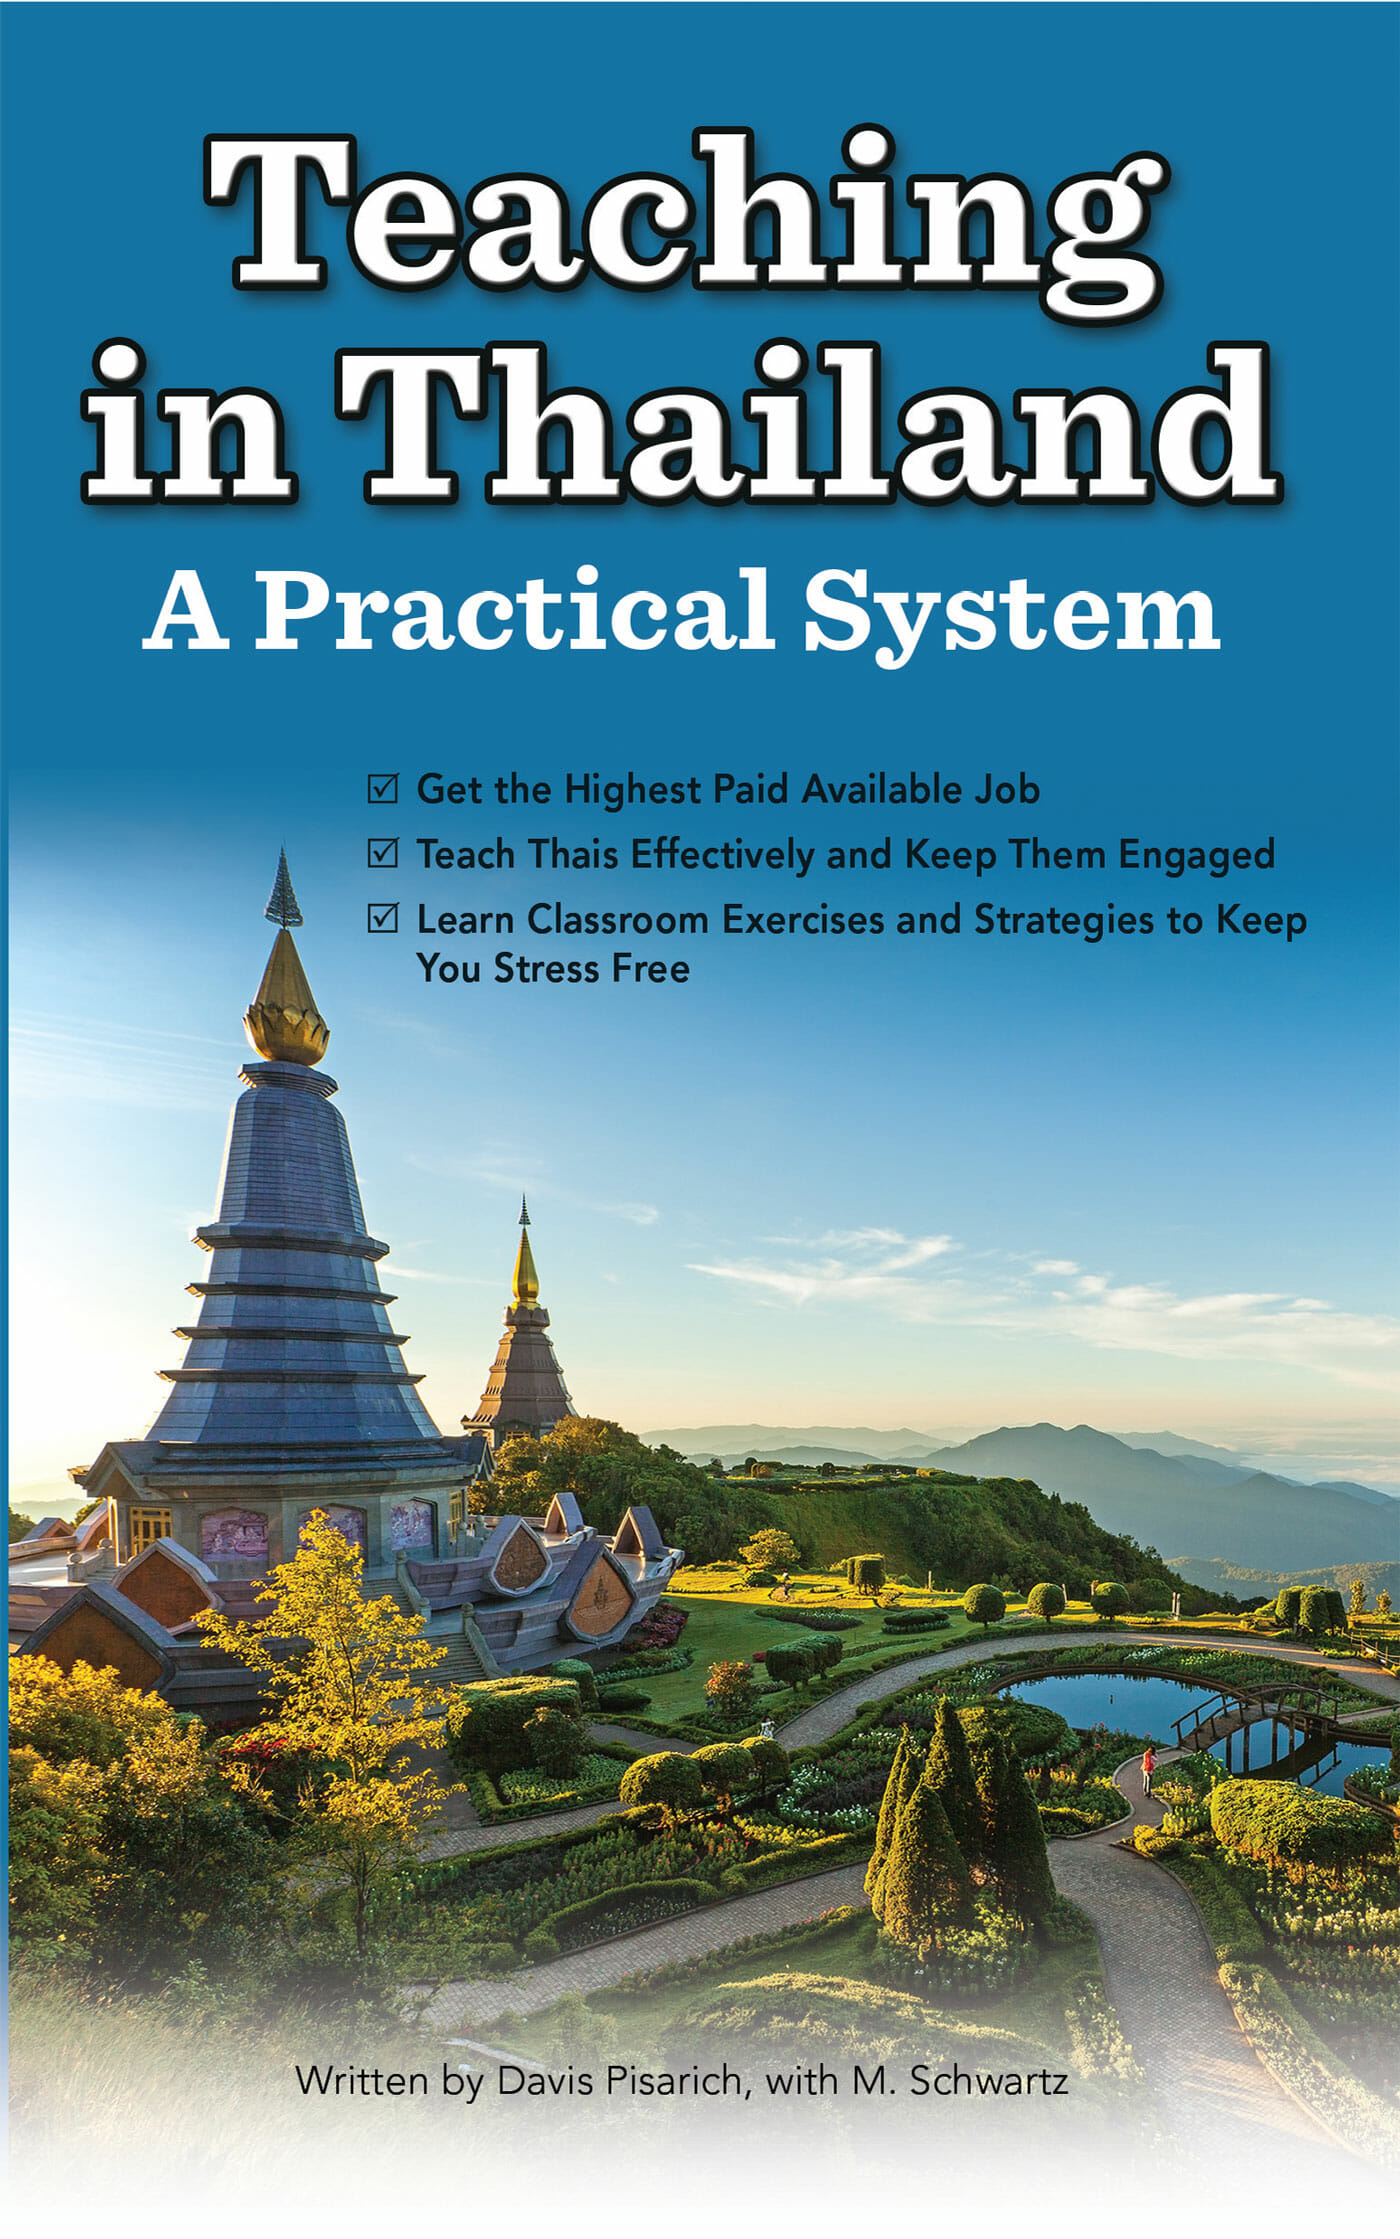 Teaching in Thailand 1